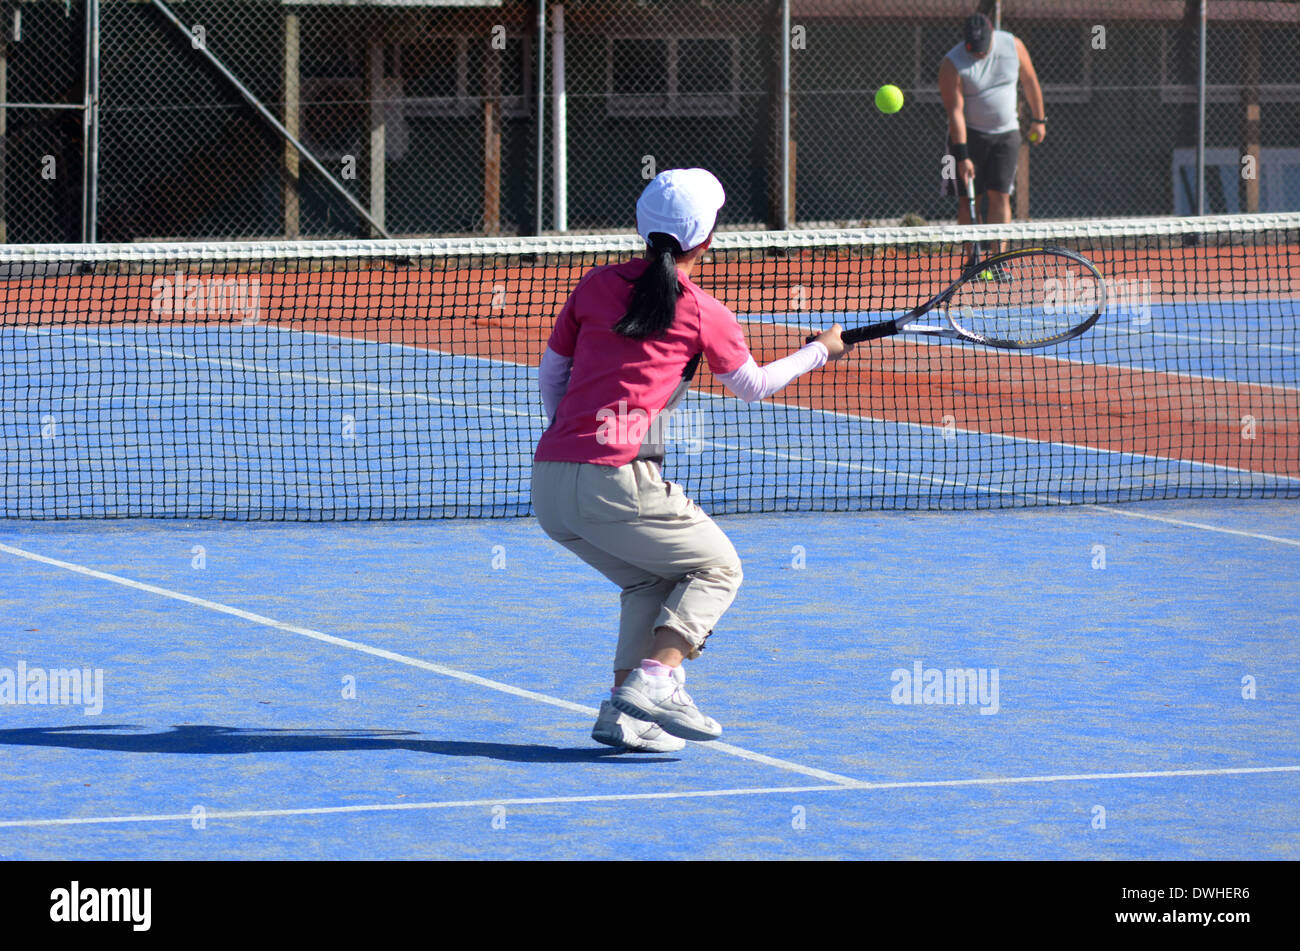 KAITAIA, NZ - MAR 06:People play tennis on Mar 06 2014.The game of tennis comes from Great Britain. - Stock Image